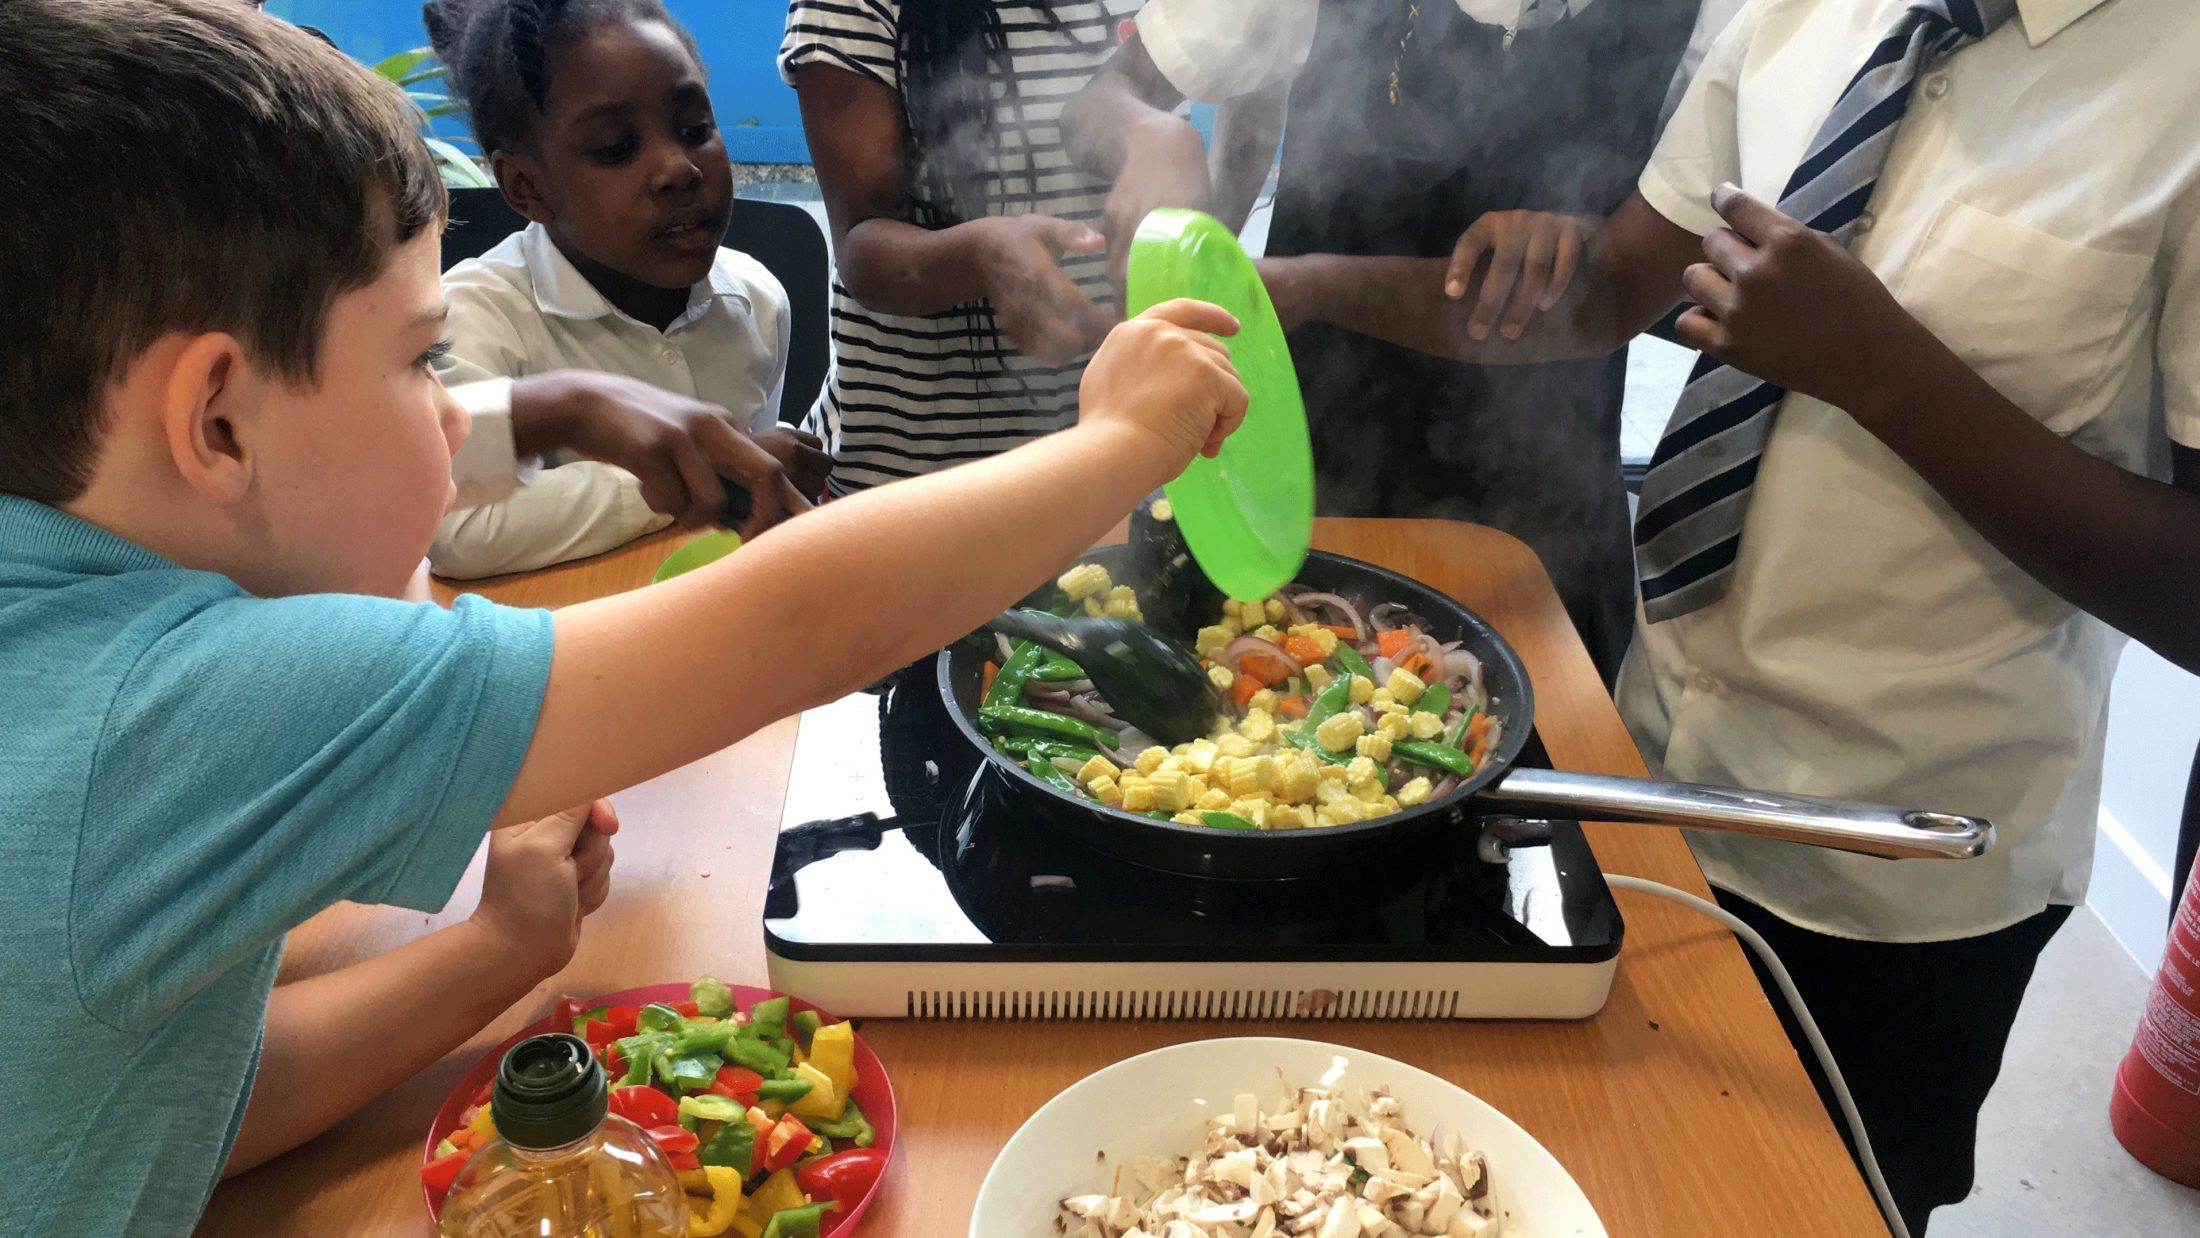 Children put vegetables into a frying pan to cook stir fry